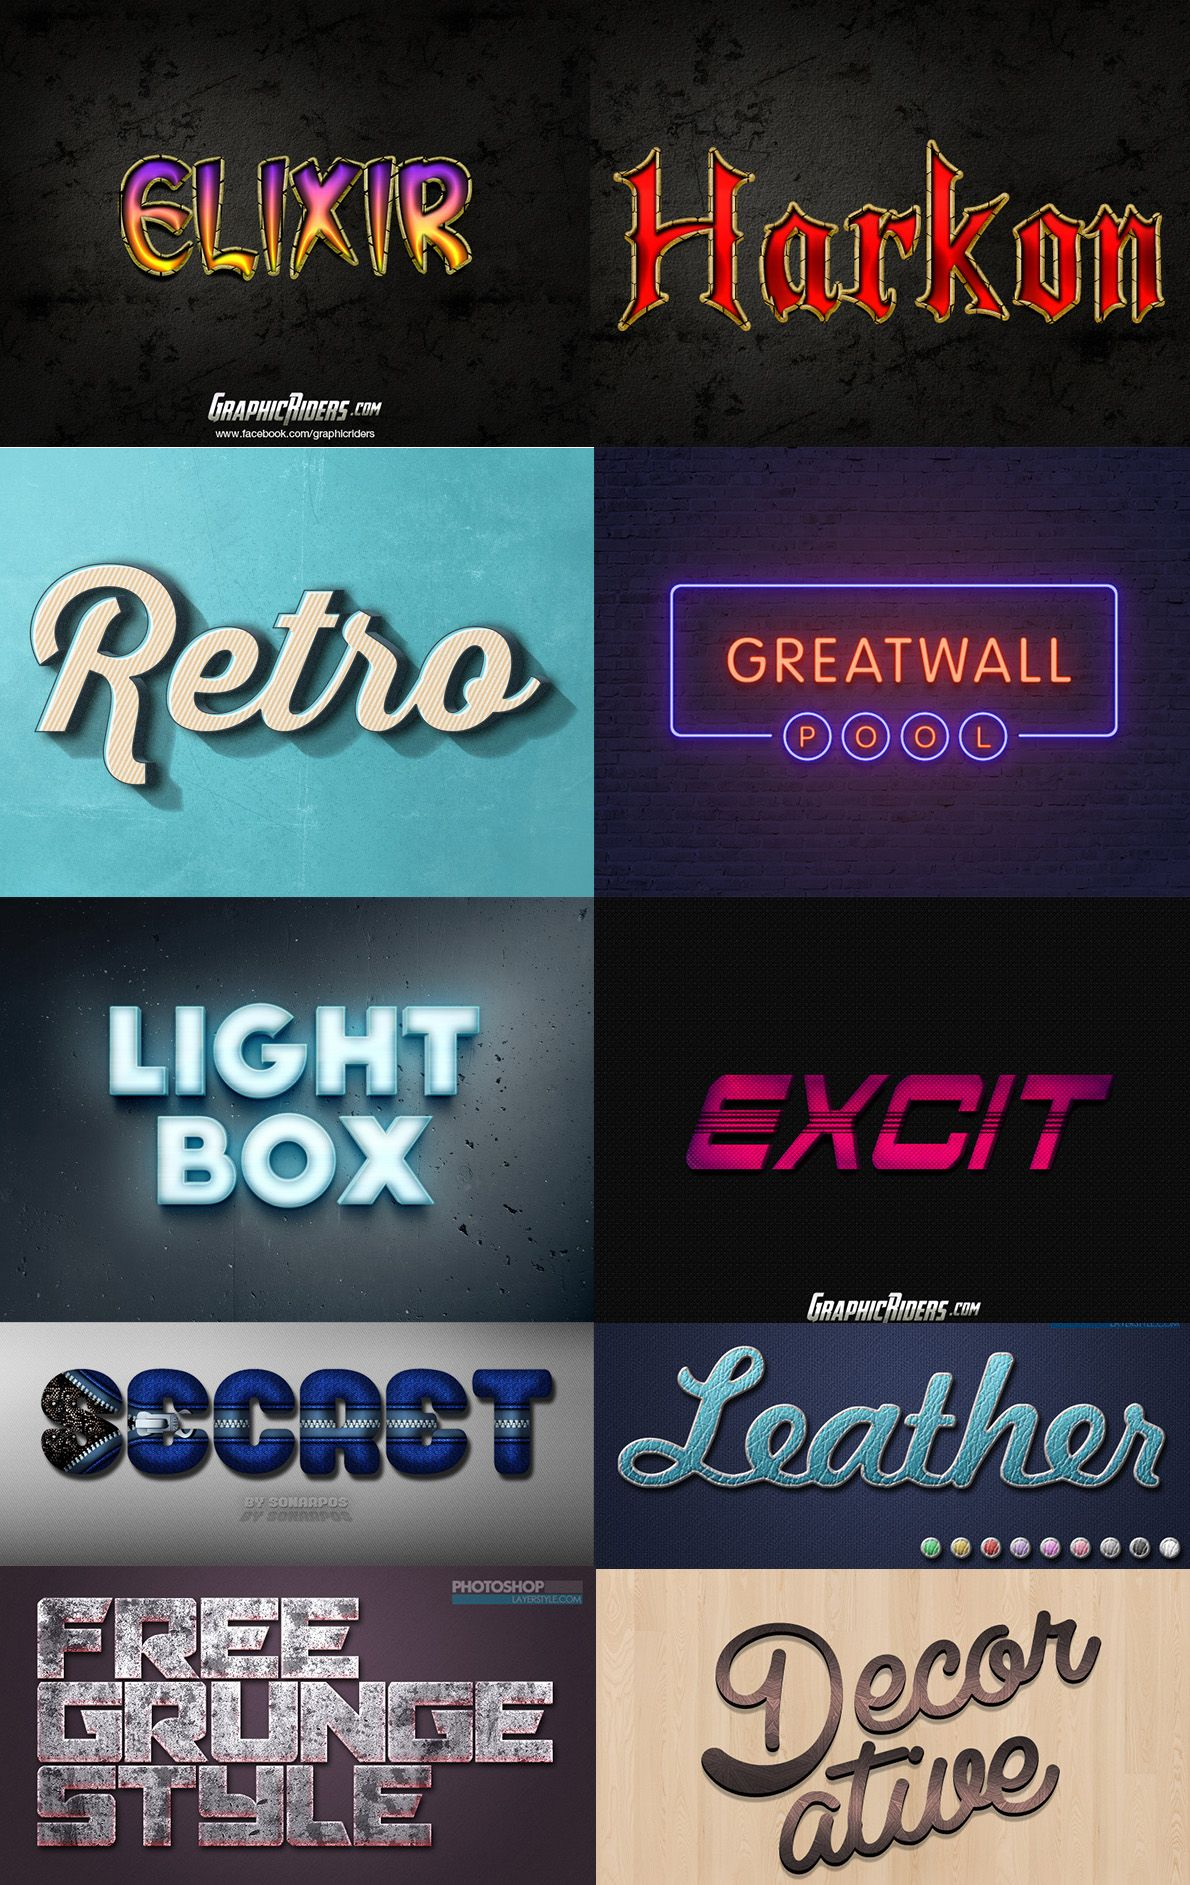 35 free photoshop layer styles to create awesome text effects free photoshop layer styles to create awesome text effects photoshop layer styles can be easily applied to any text to create an awesome text effect baditri Choice Image